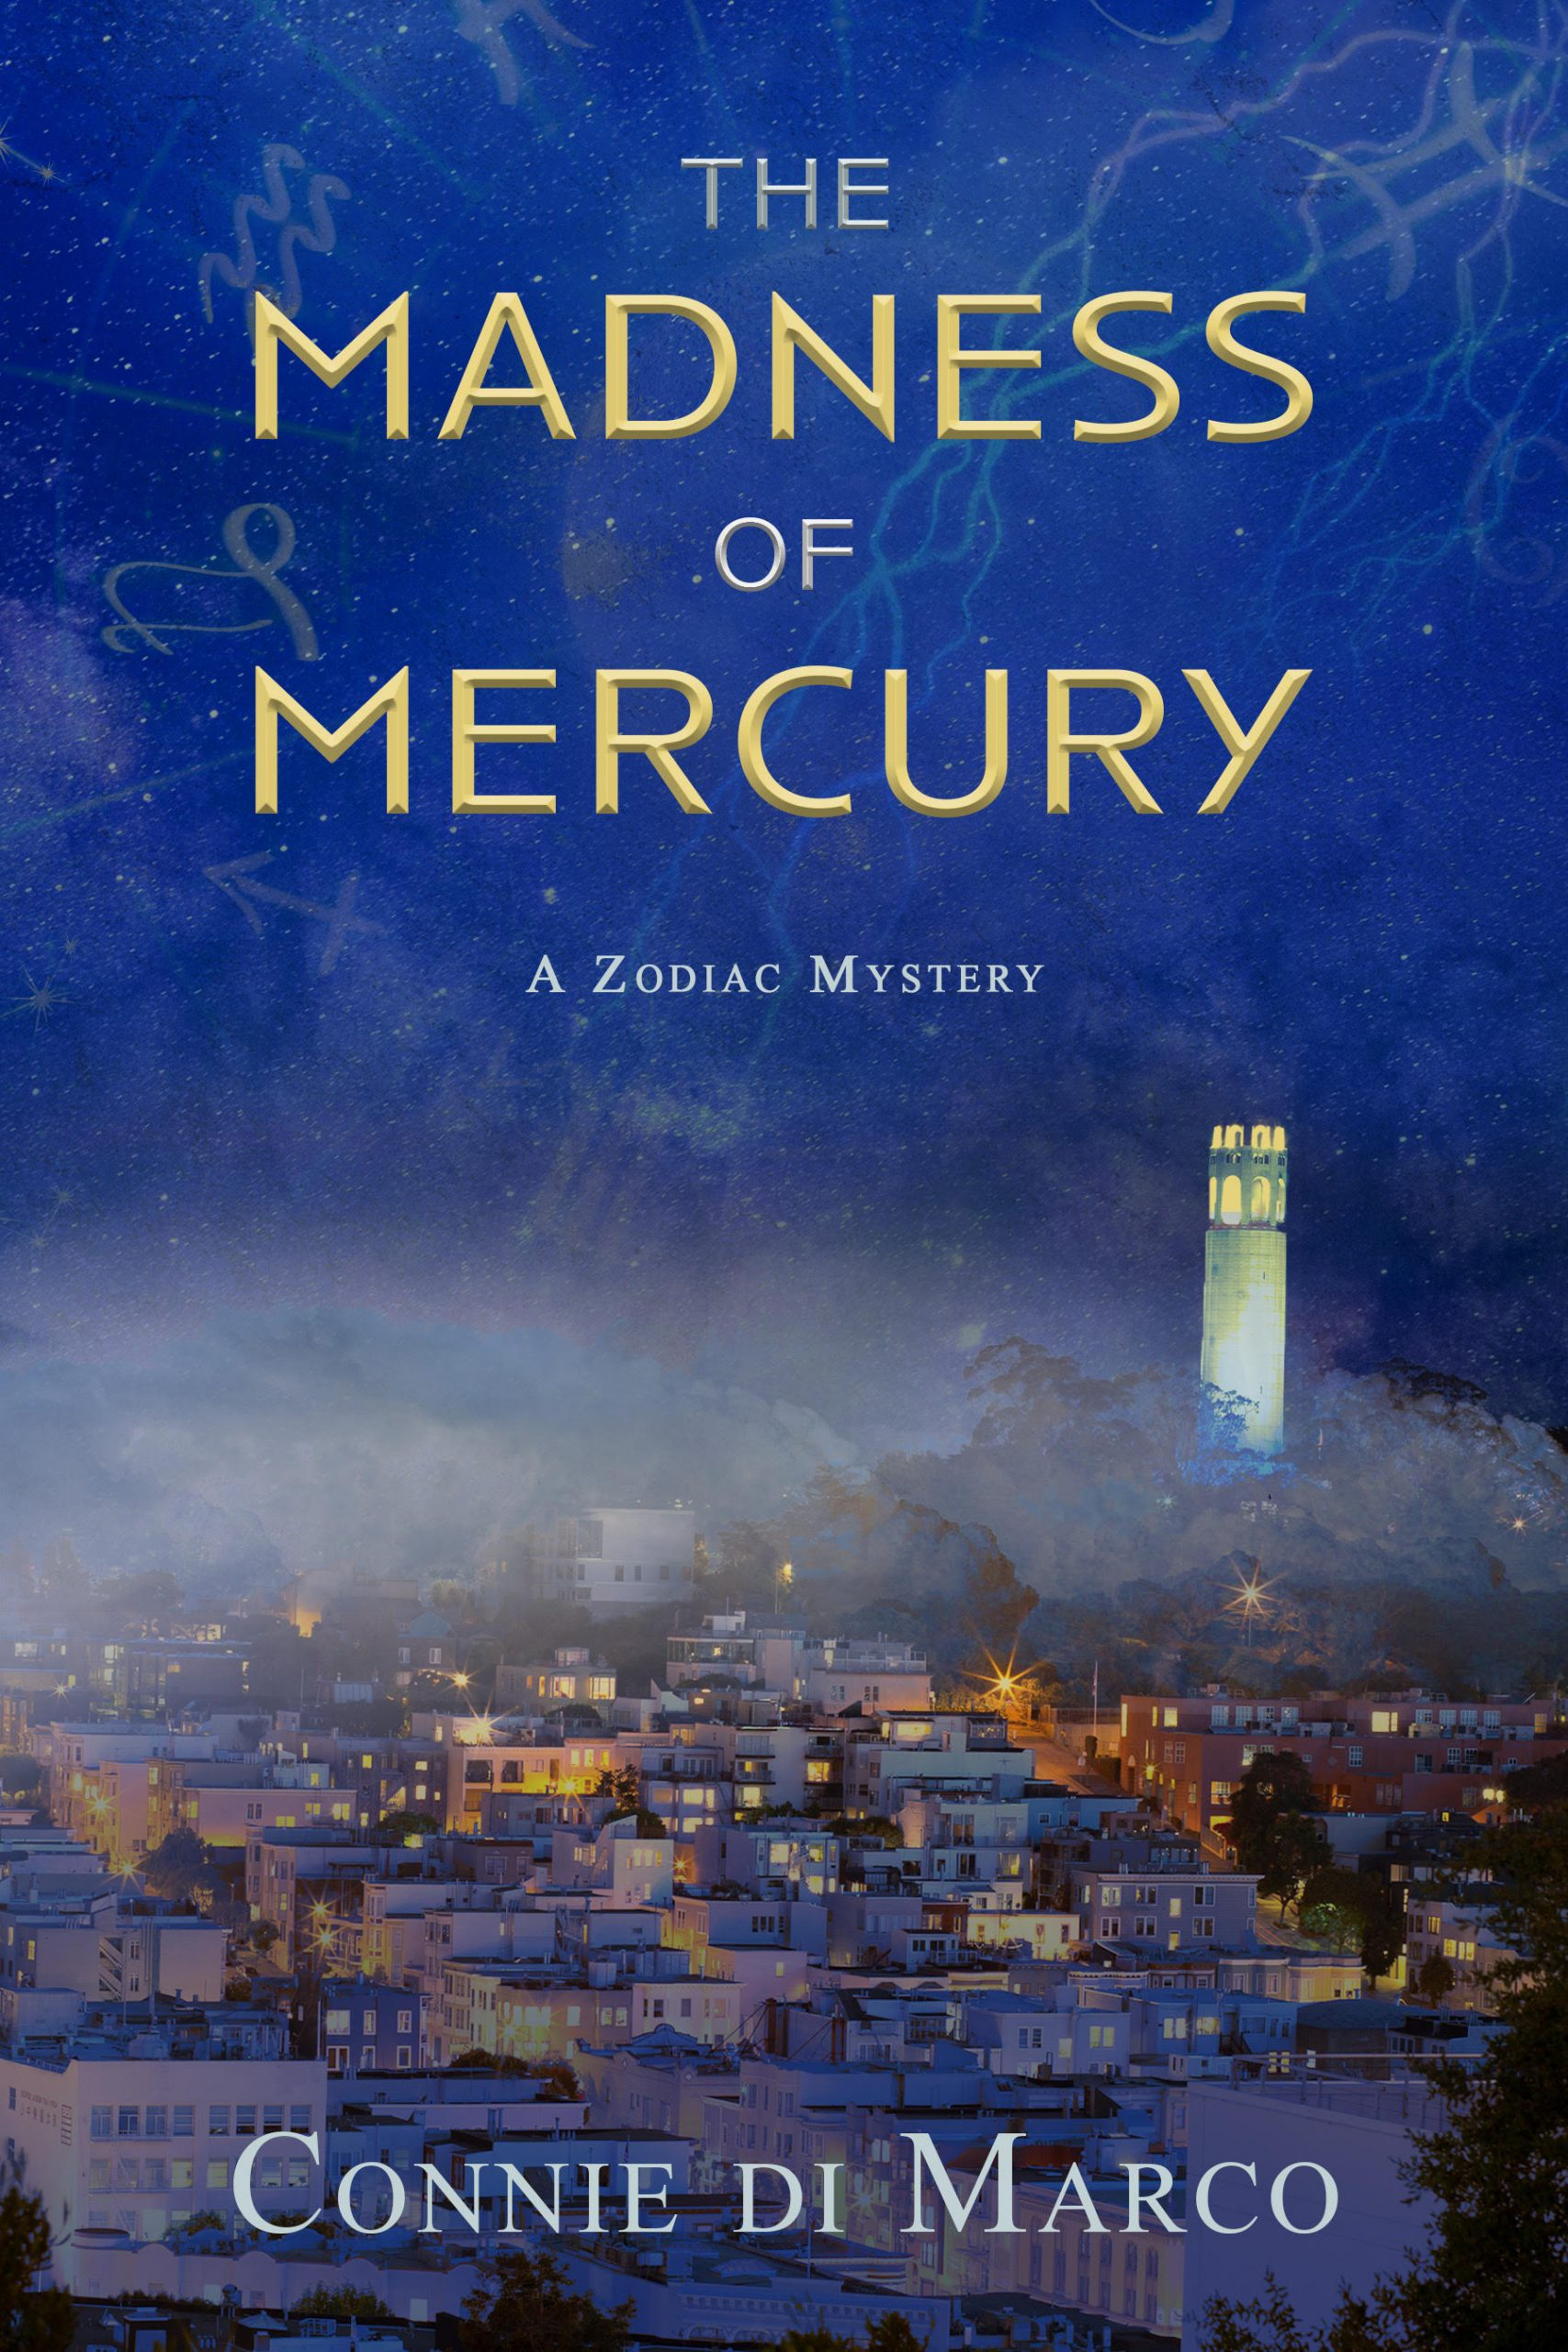 The Madness of Mercury by Connie di Marco